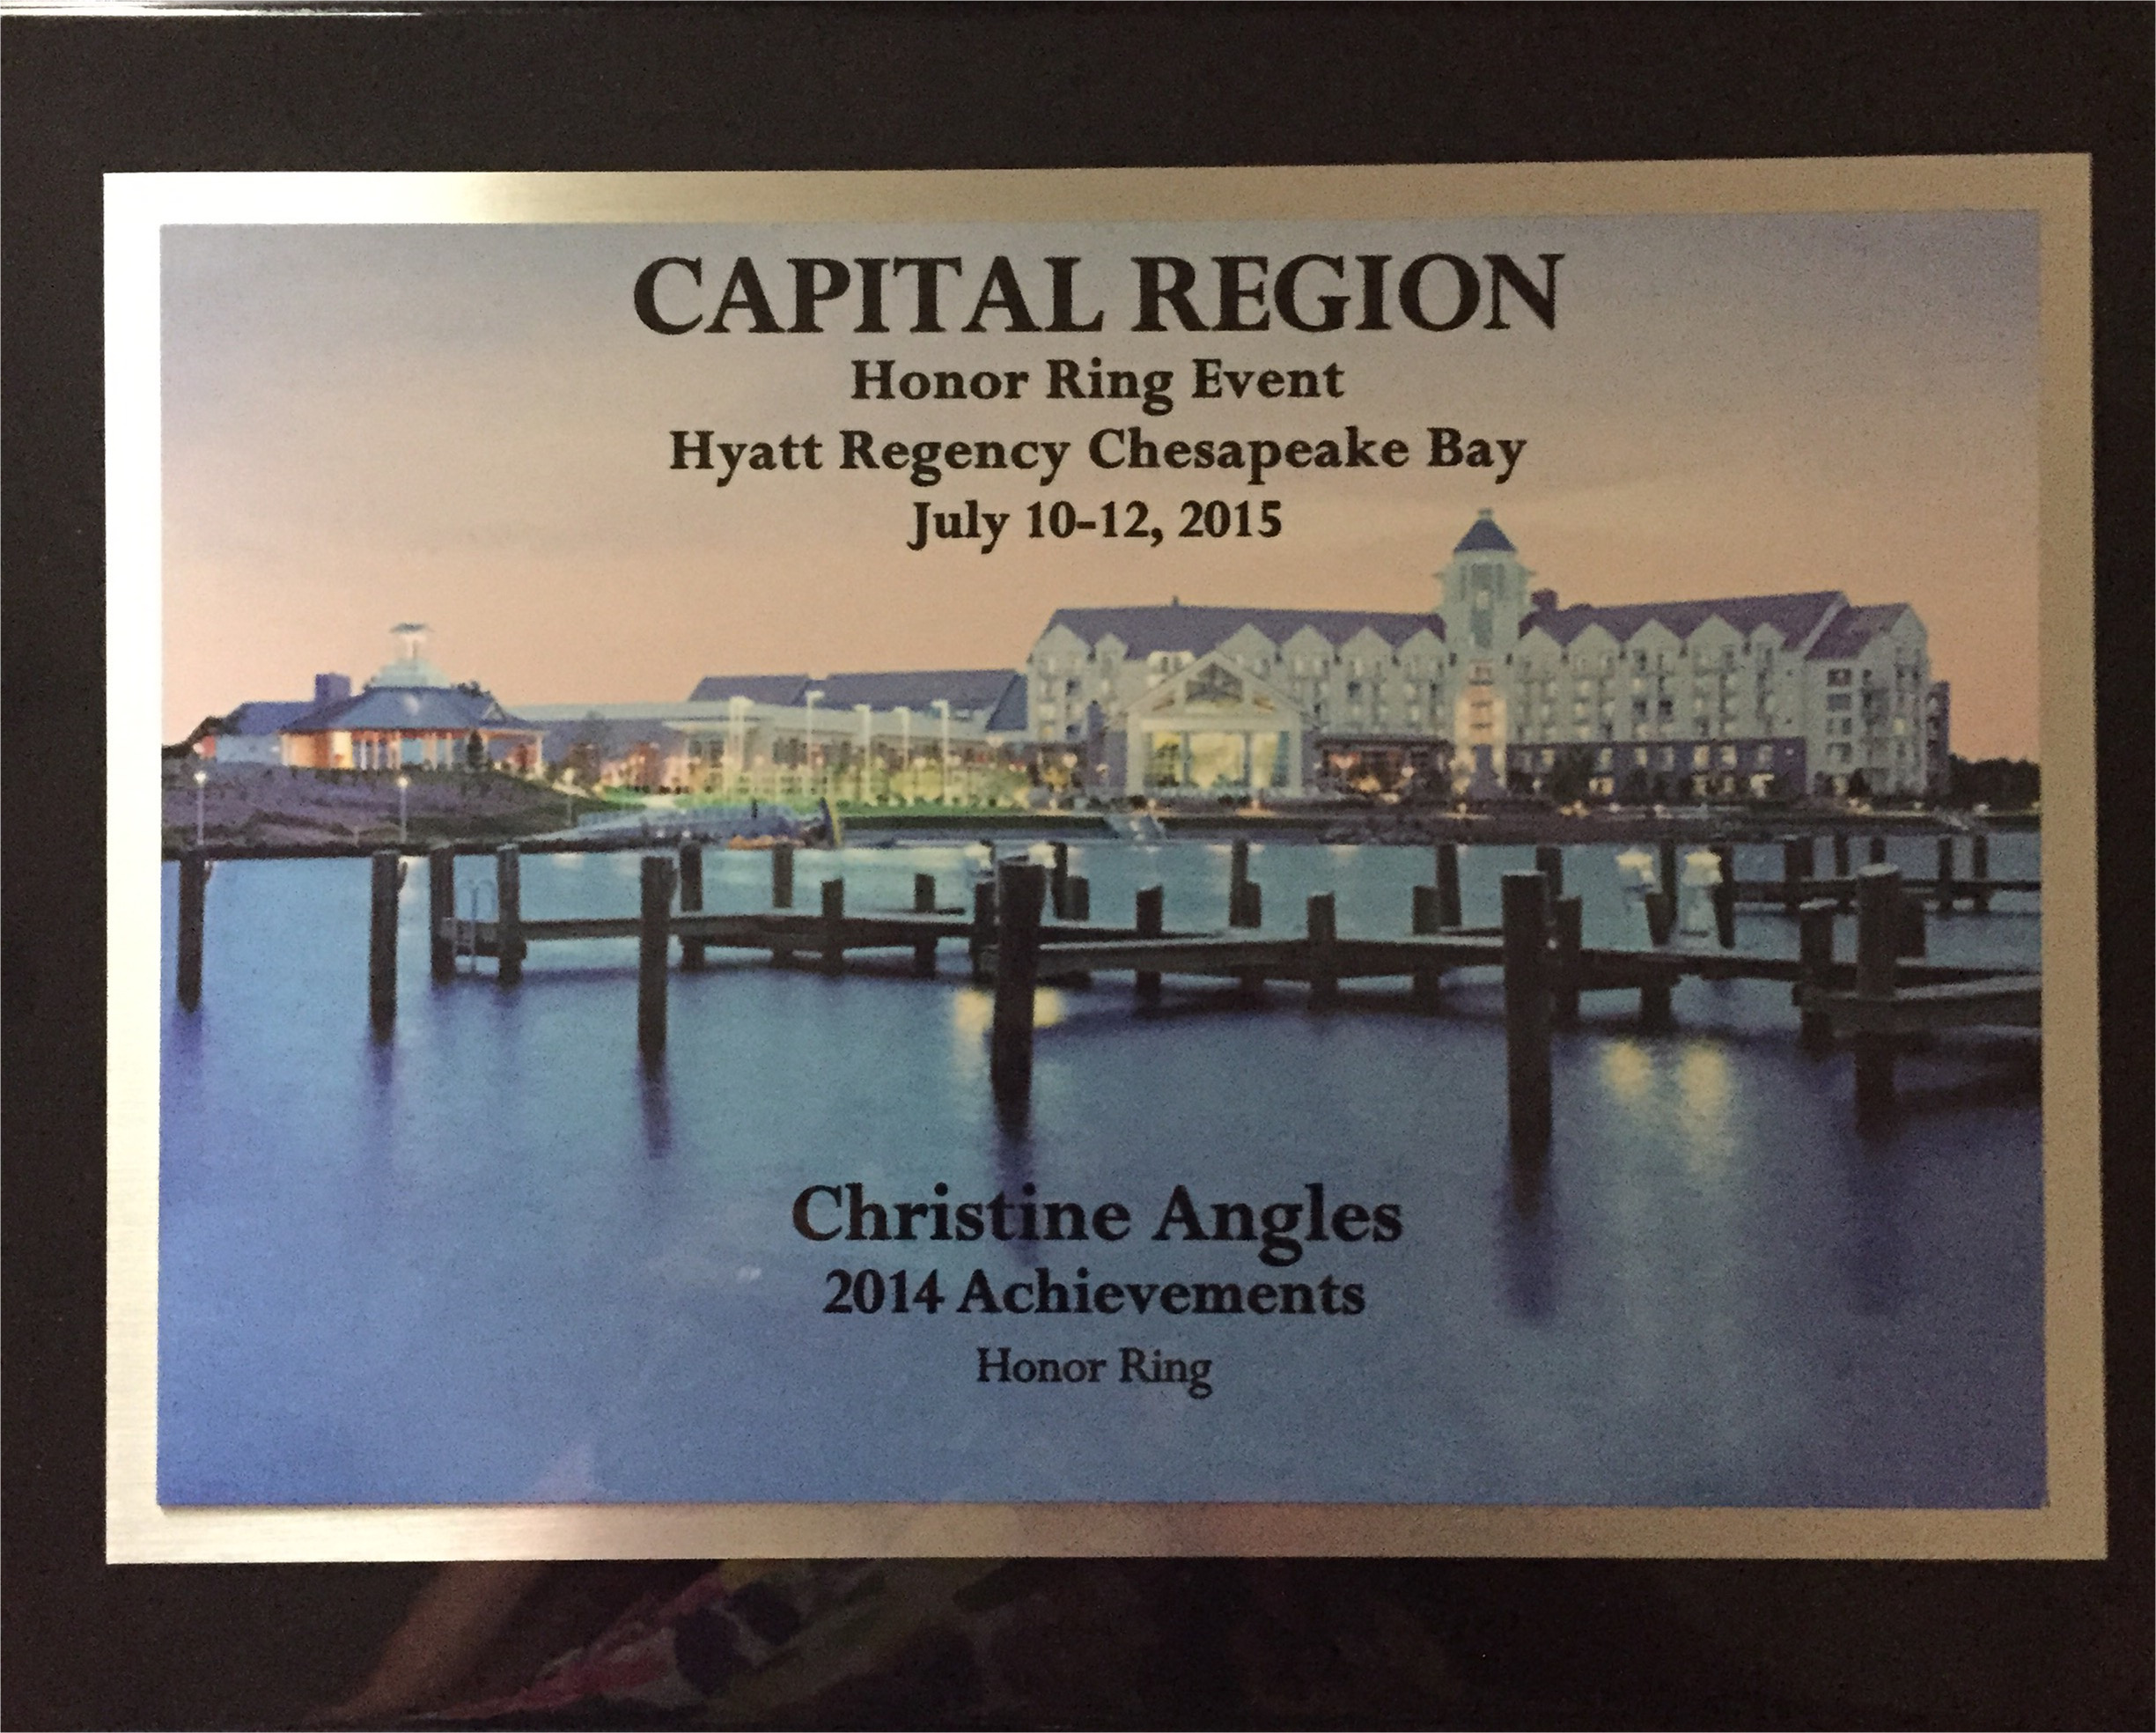 Angles Insurance | Manassas Allstate Agent Honored by